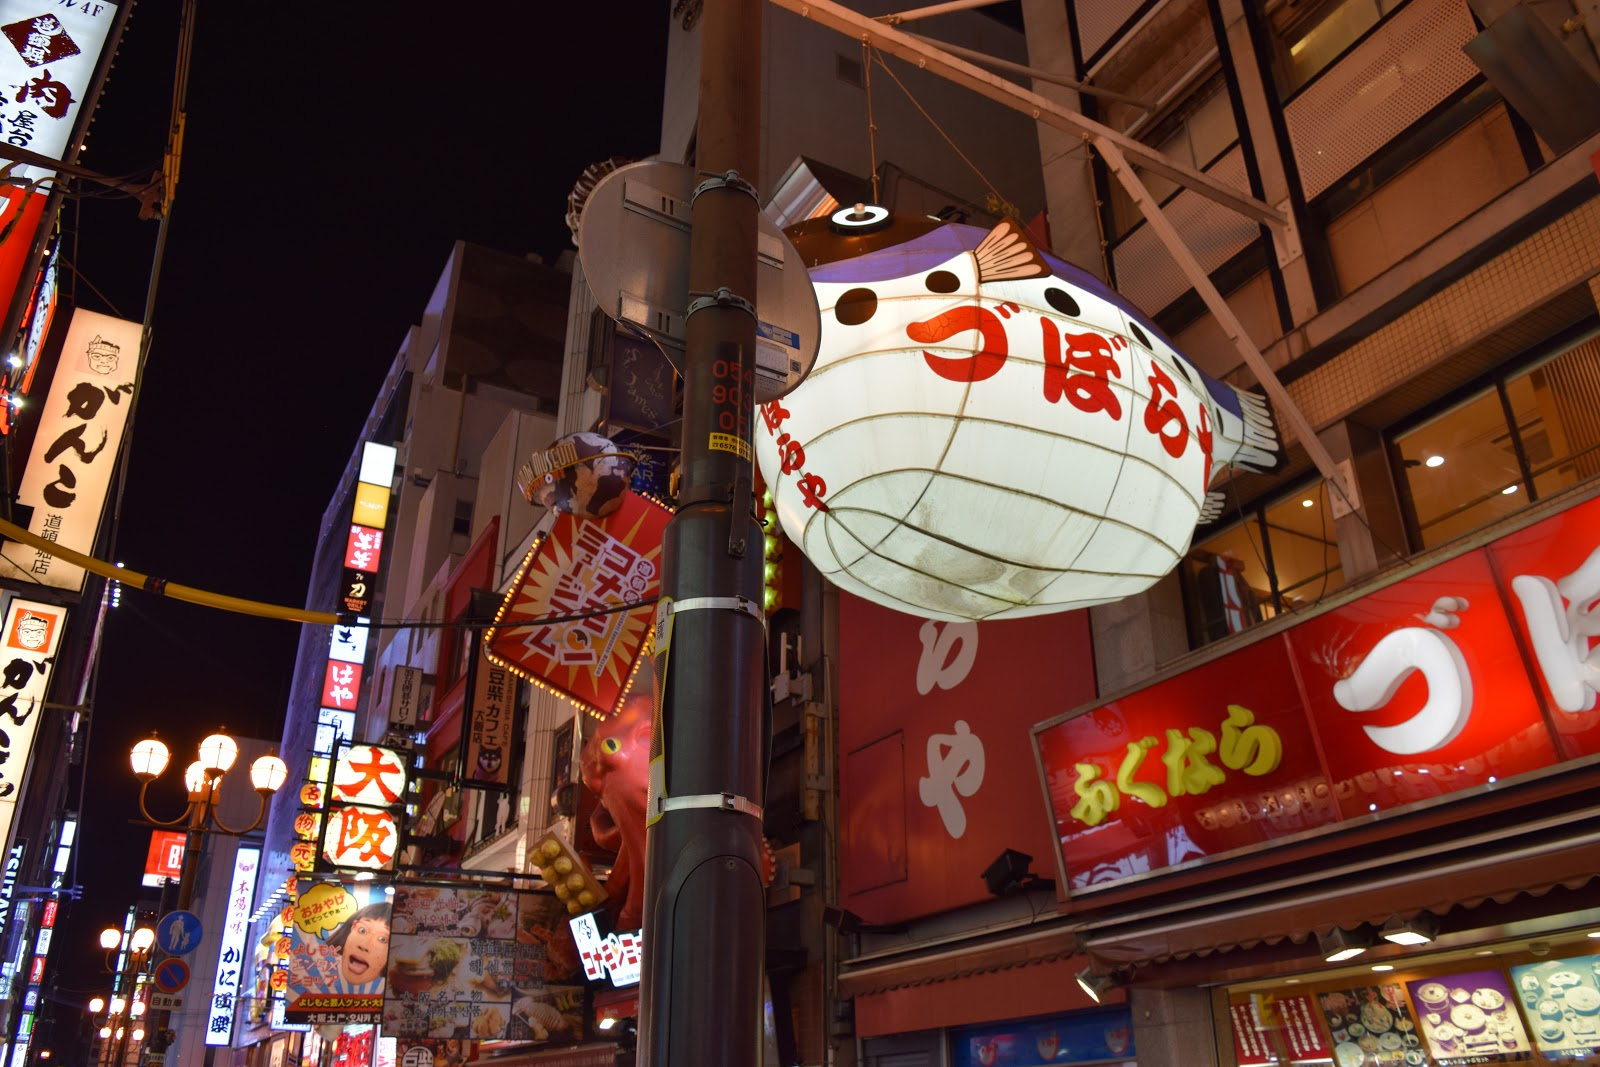 Neon signs and crowds in Dotombori,, Osaka at night